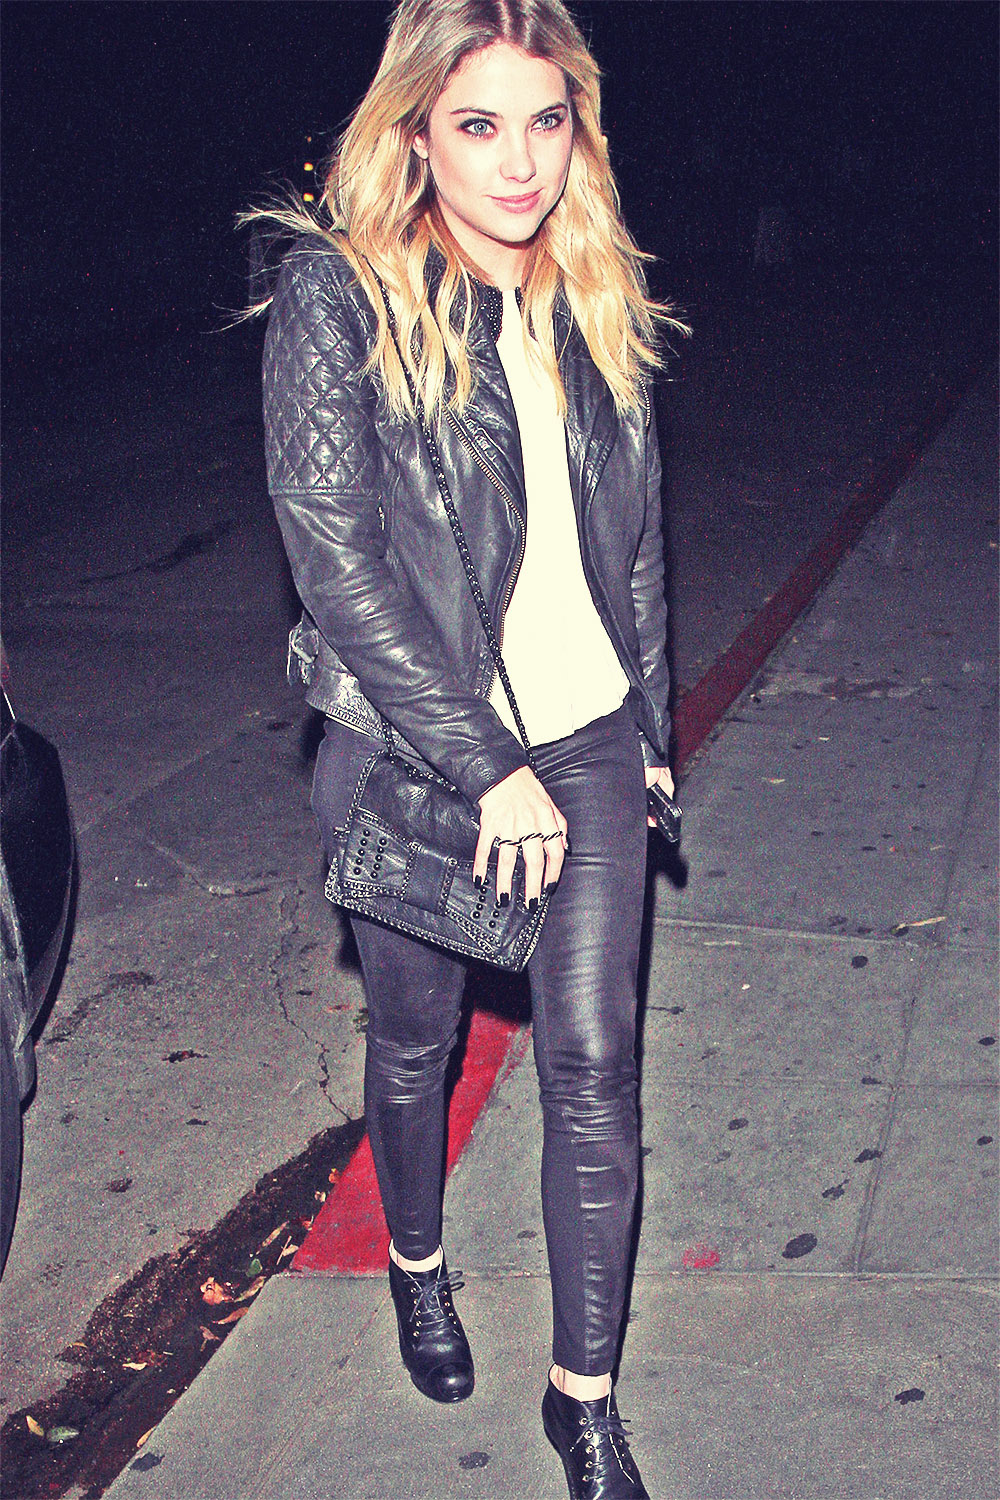 Ashley Benson arriving to the Chateau Marmont